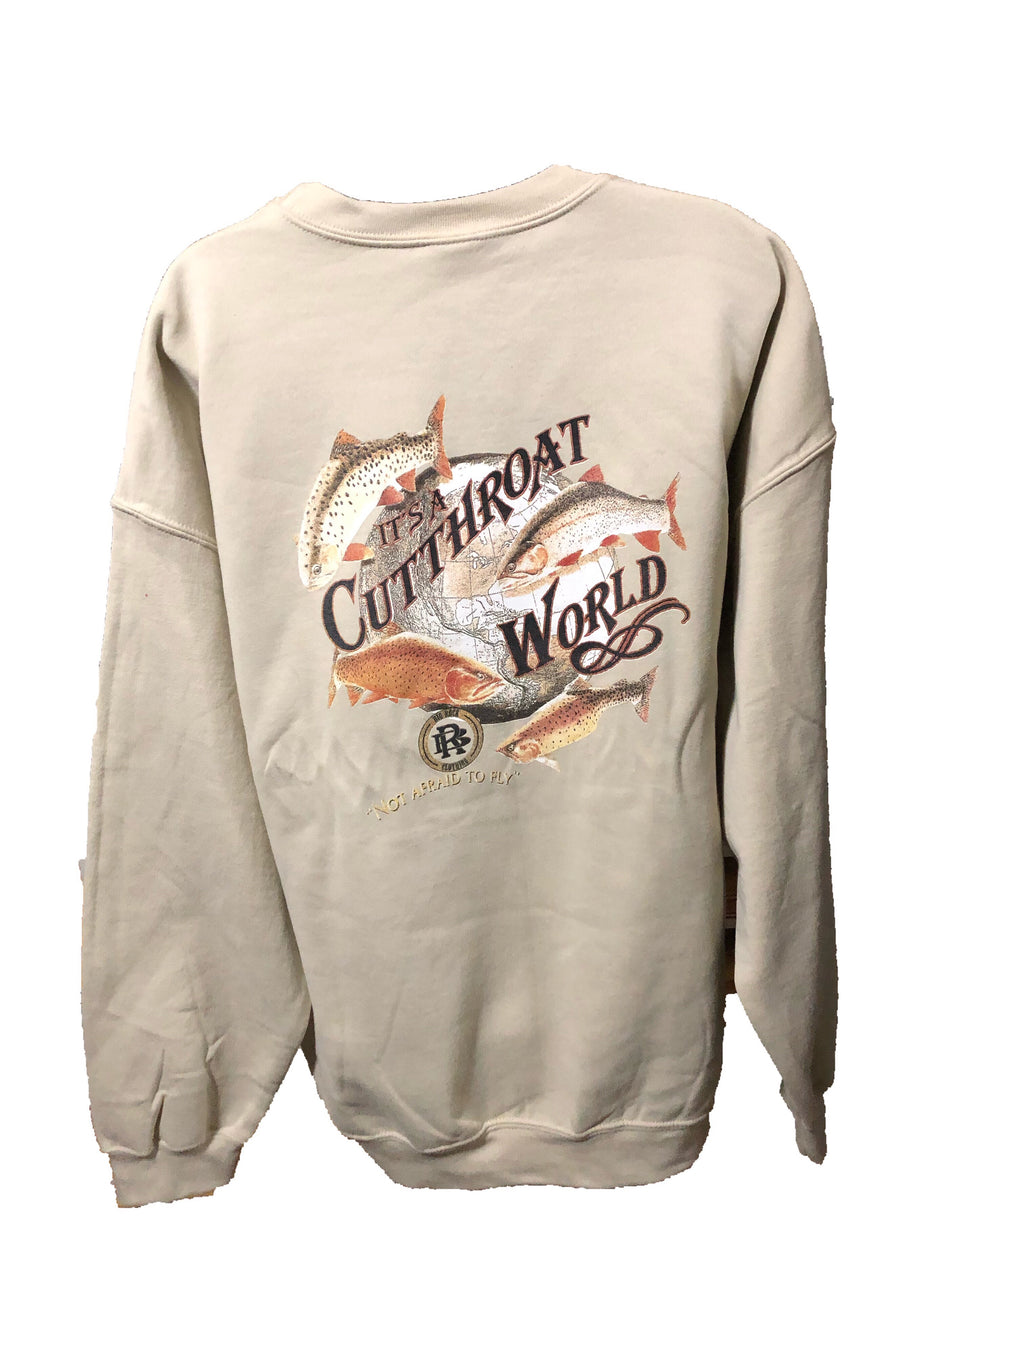 Sweatshirt- Cutthroat World